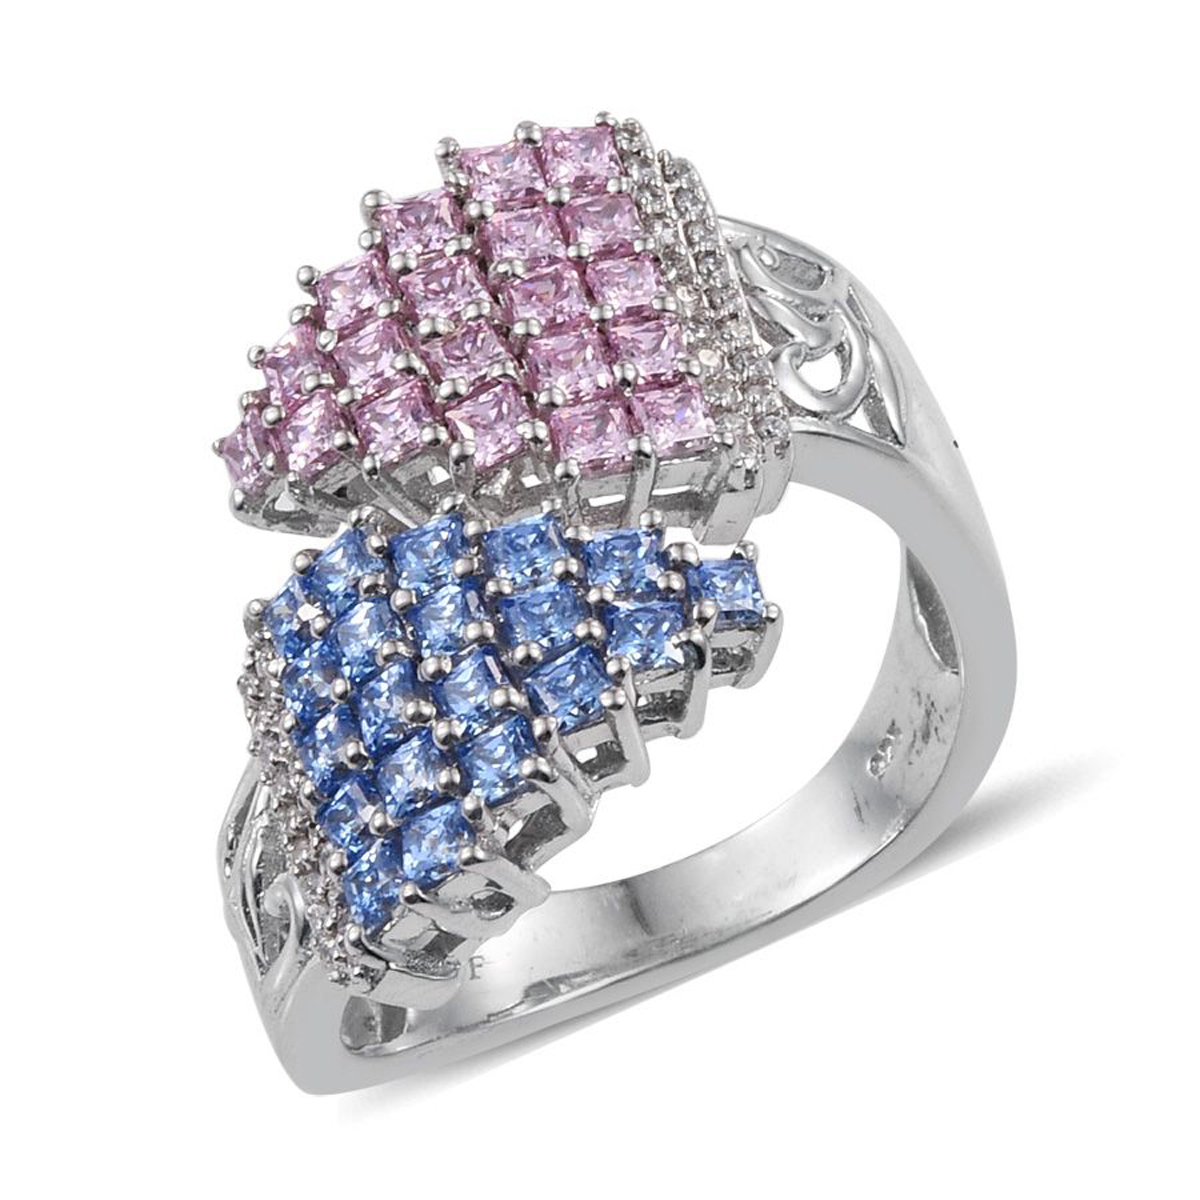 J francis platinum over sterling silver bypass ring made for Swarovski jewelry online store